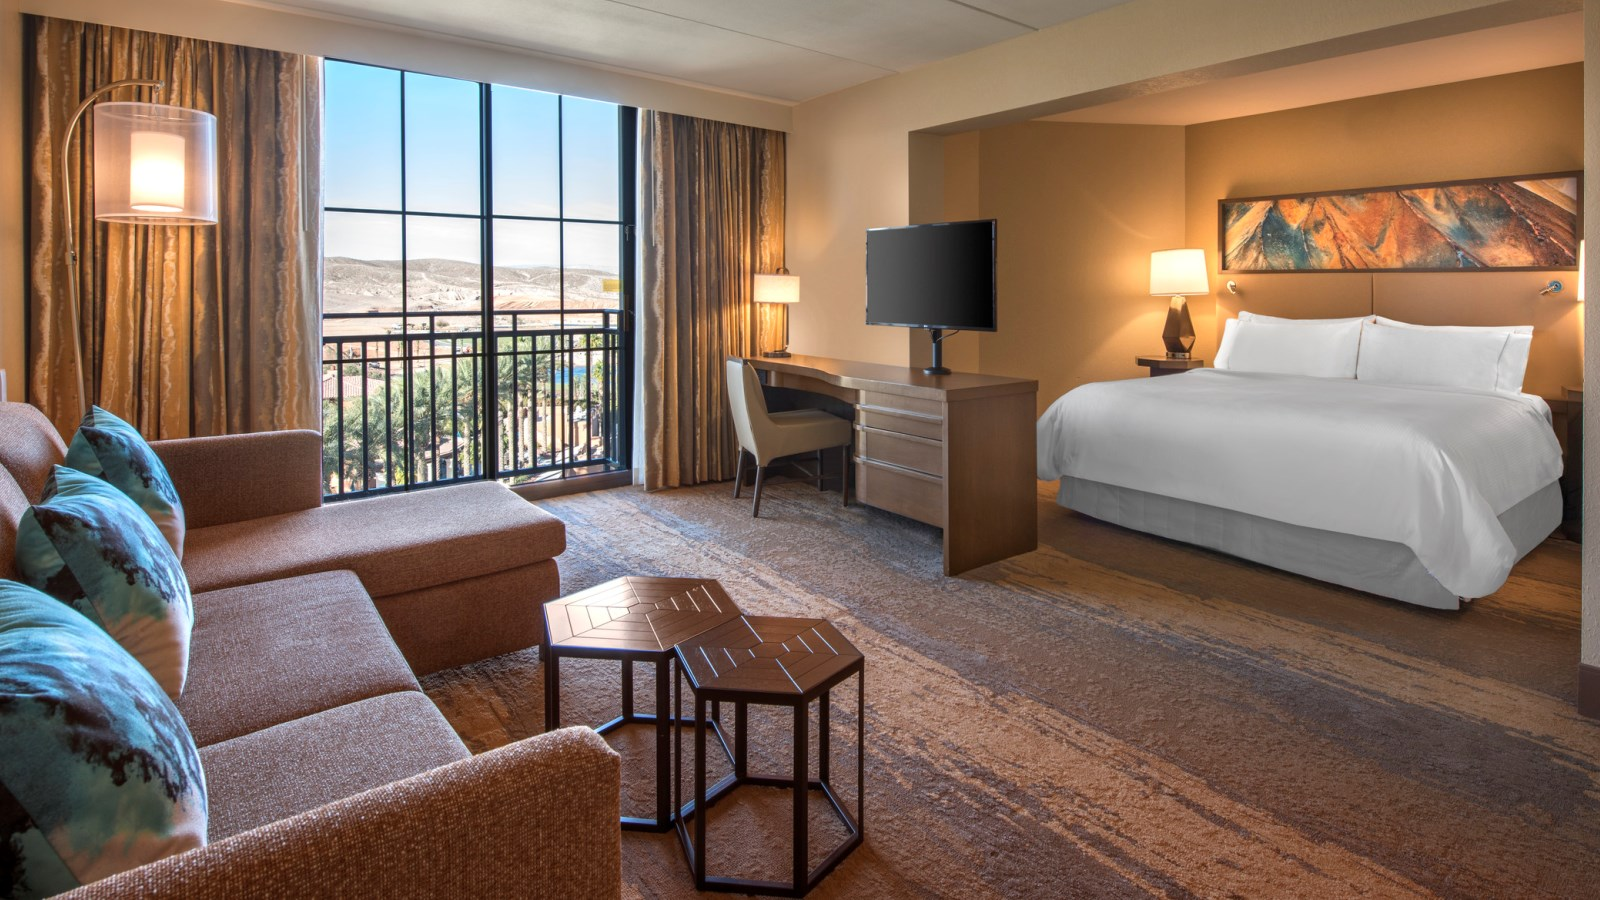 lake las vegas hotels - junior suites